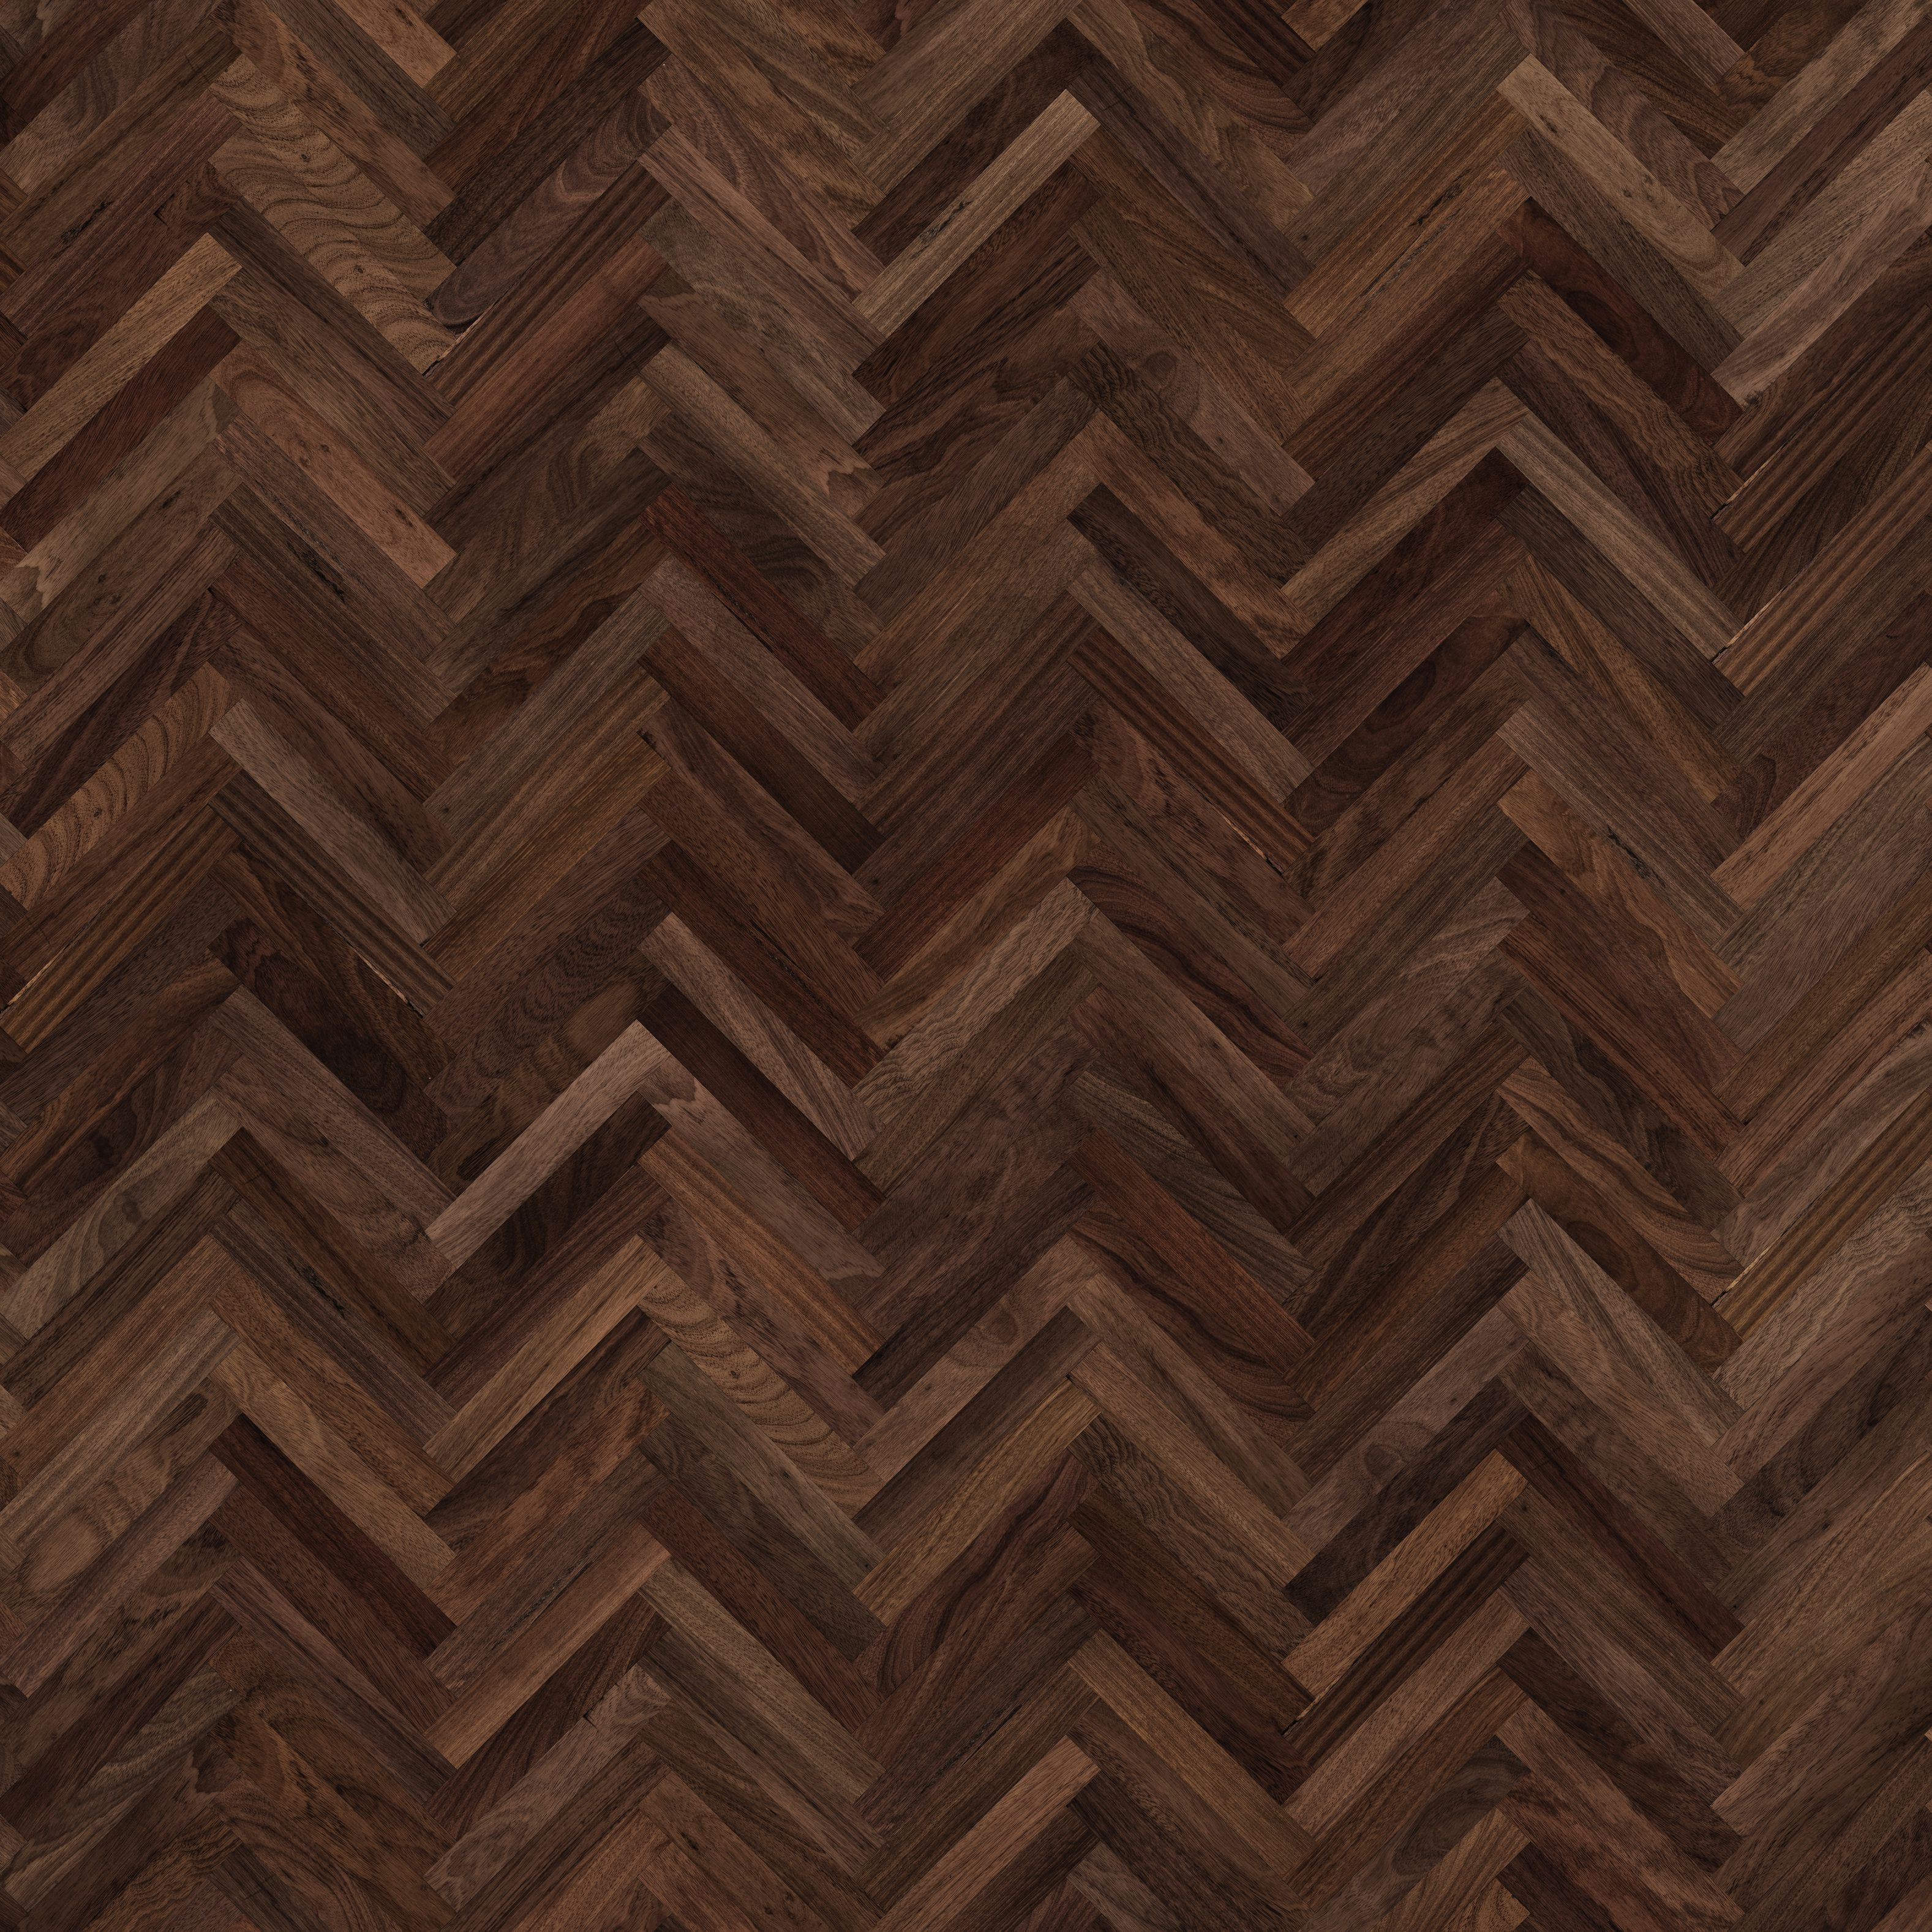 Hardwood Floor Protection Paper Of Parquet Wood Flooring for Dark Brown Wood Background Xxxl 171110782 587c06b75f9b584db316fb21